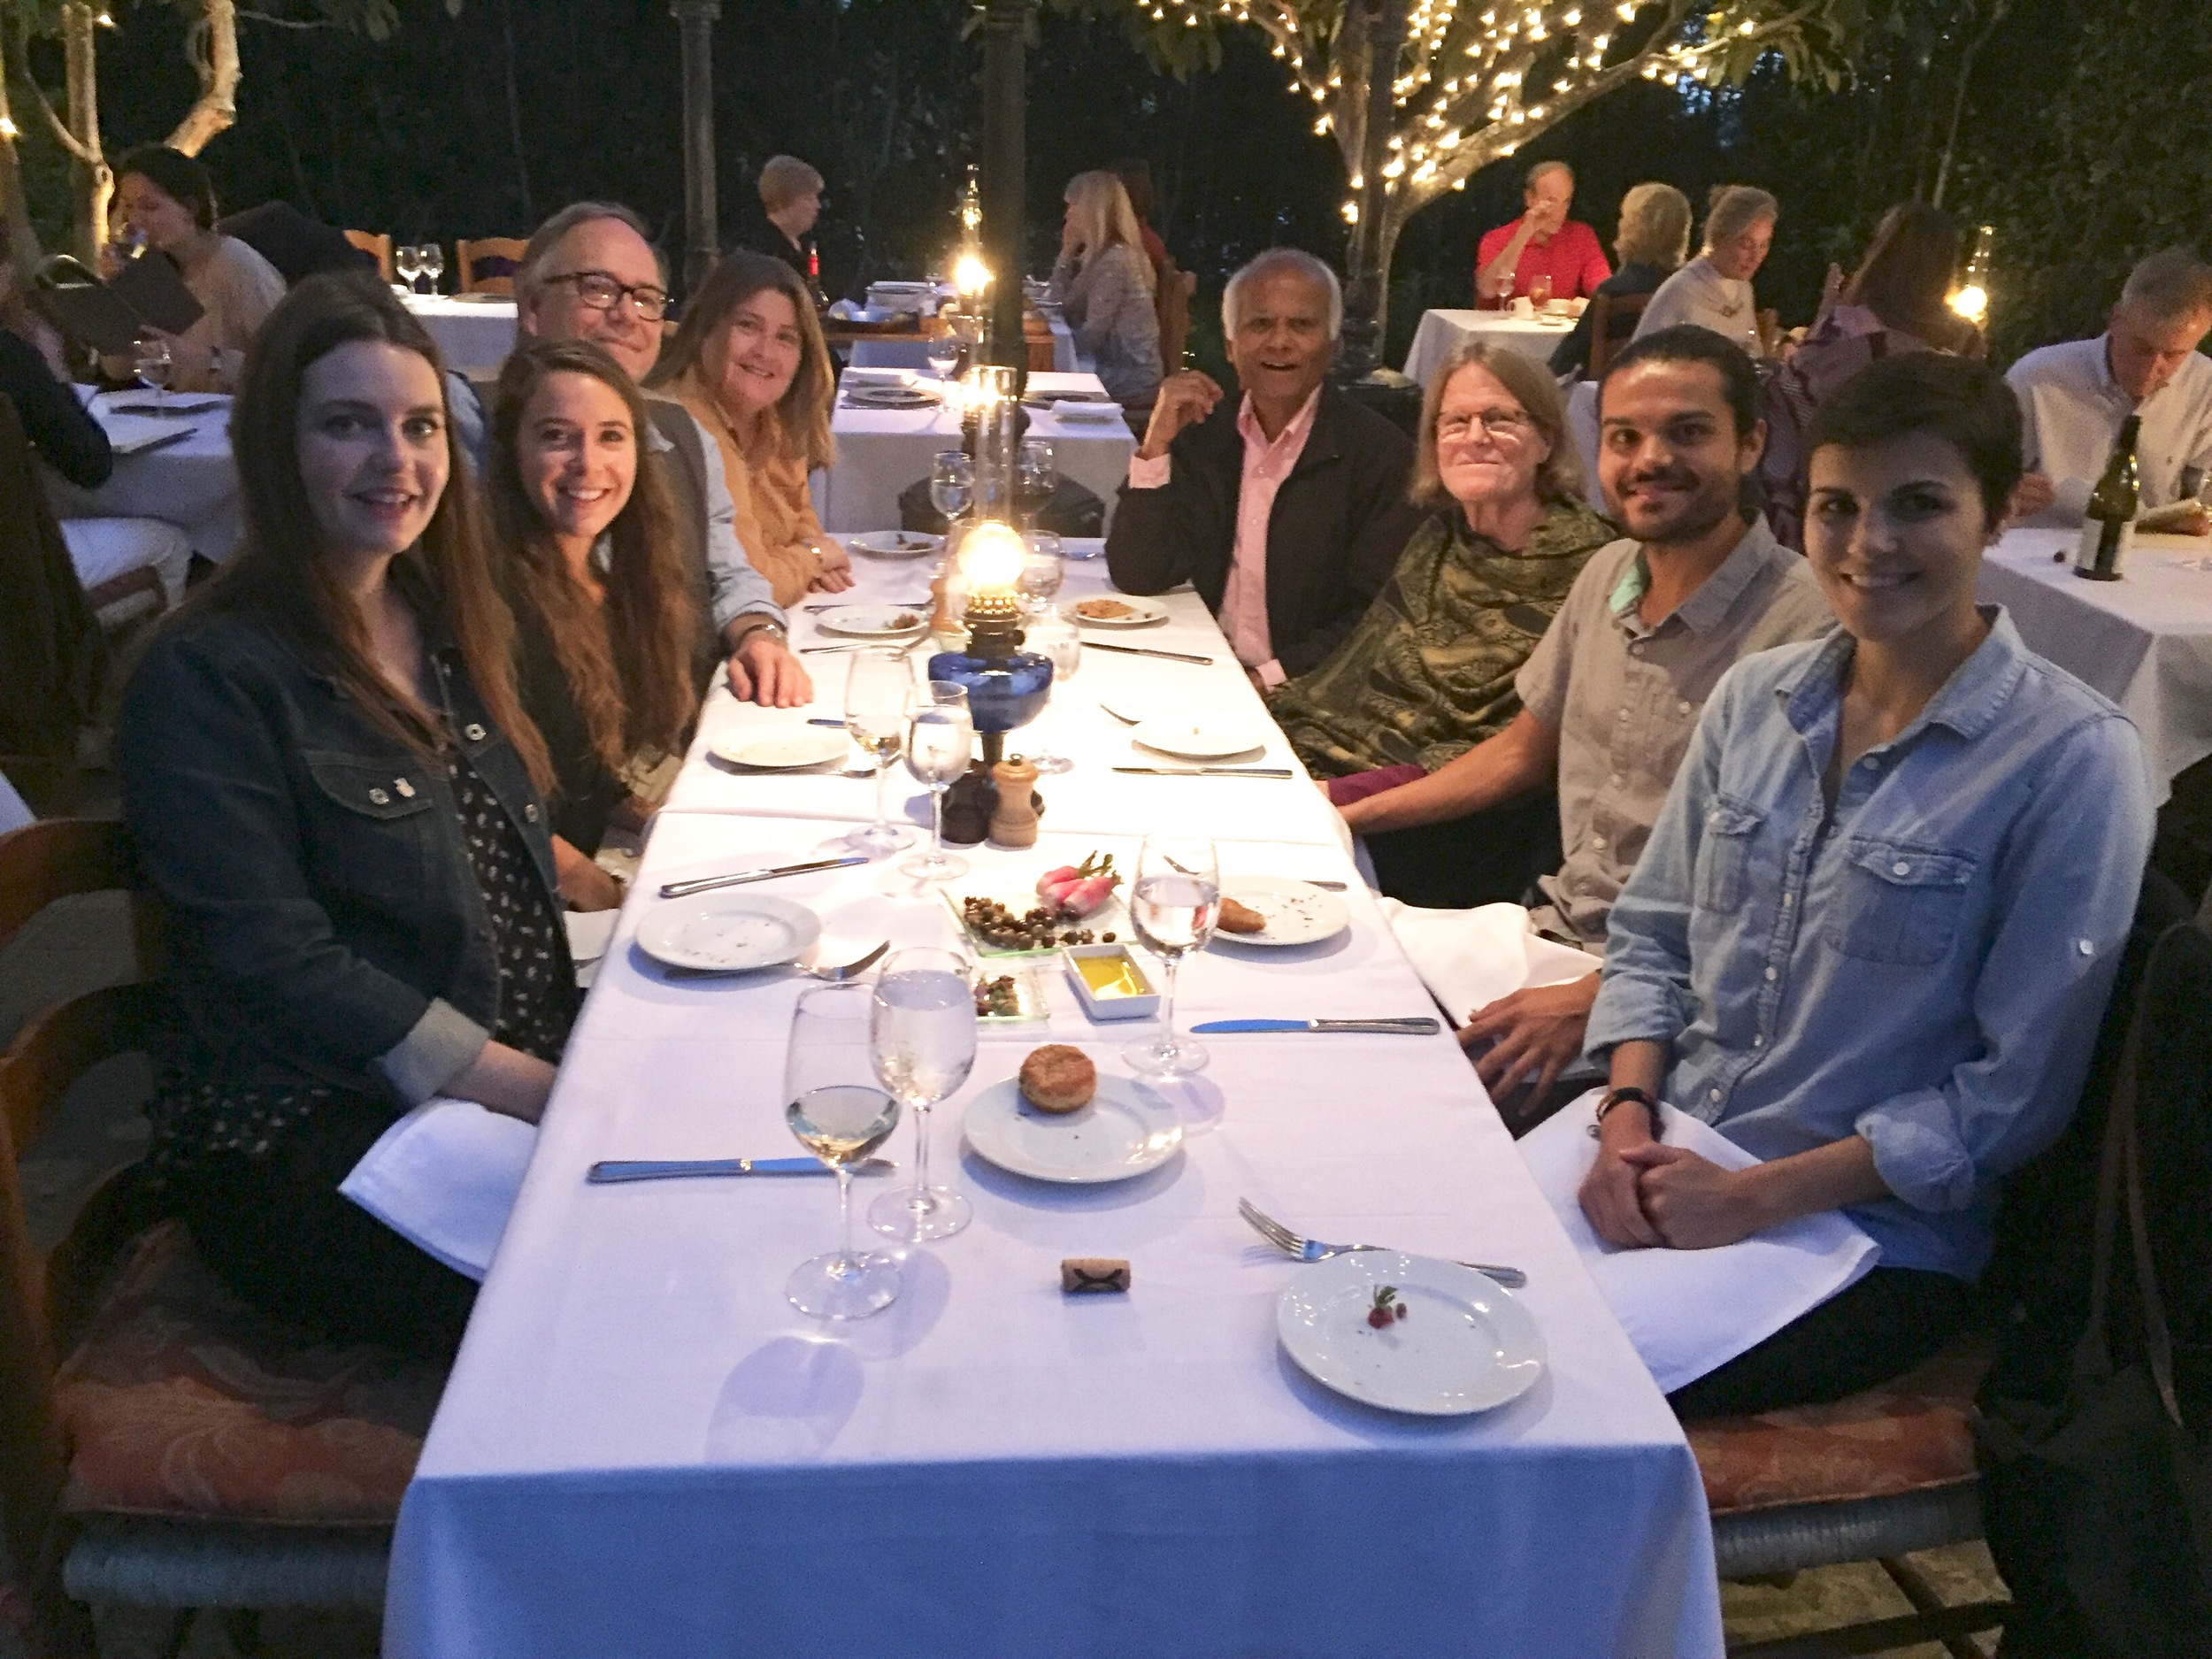 Double family dinner at San Ysidro Ranch!